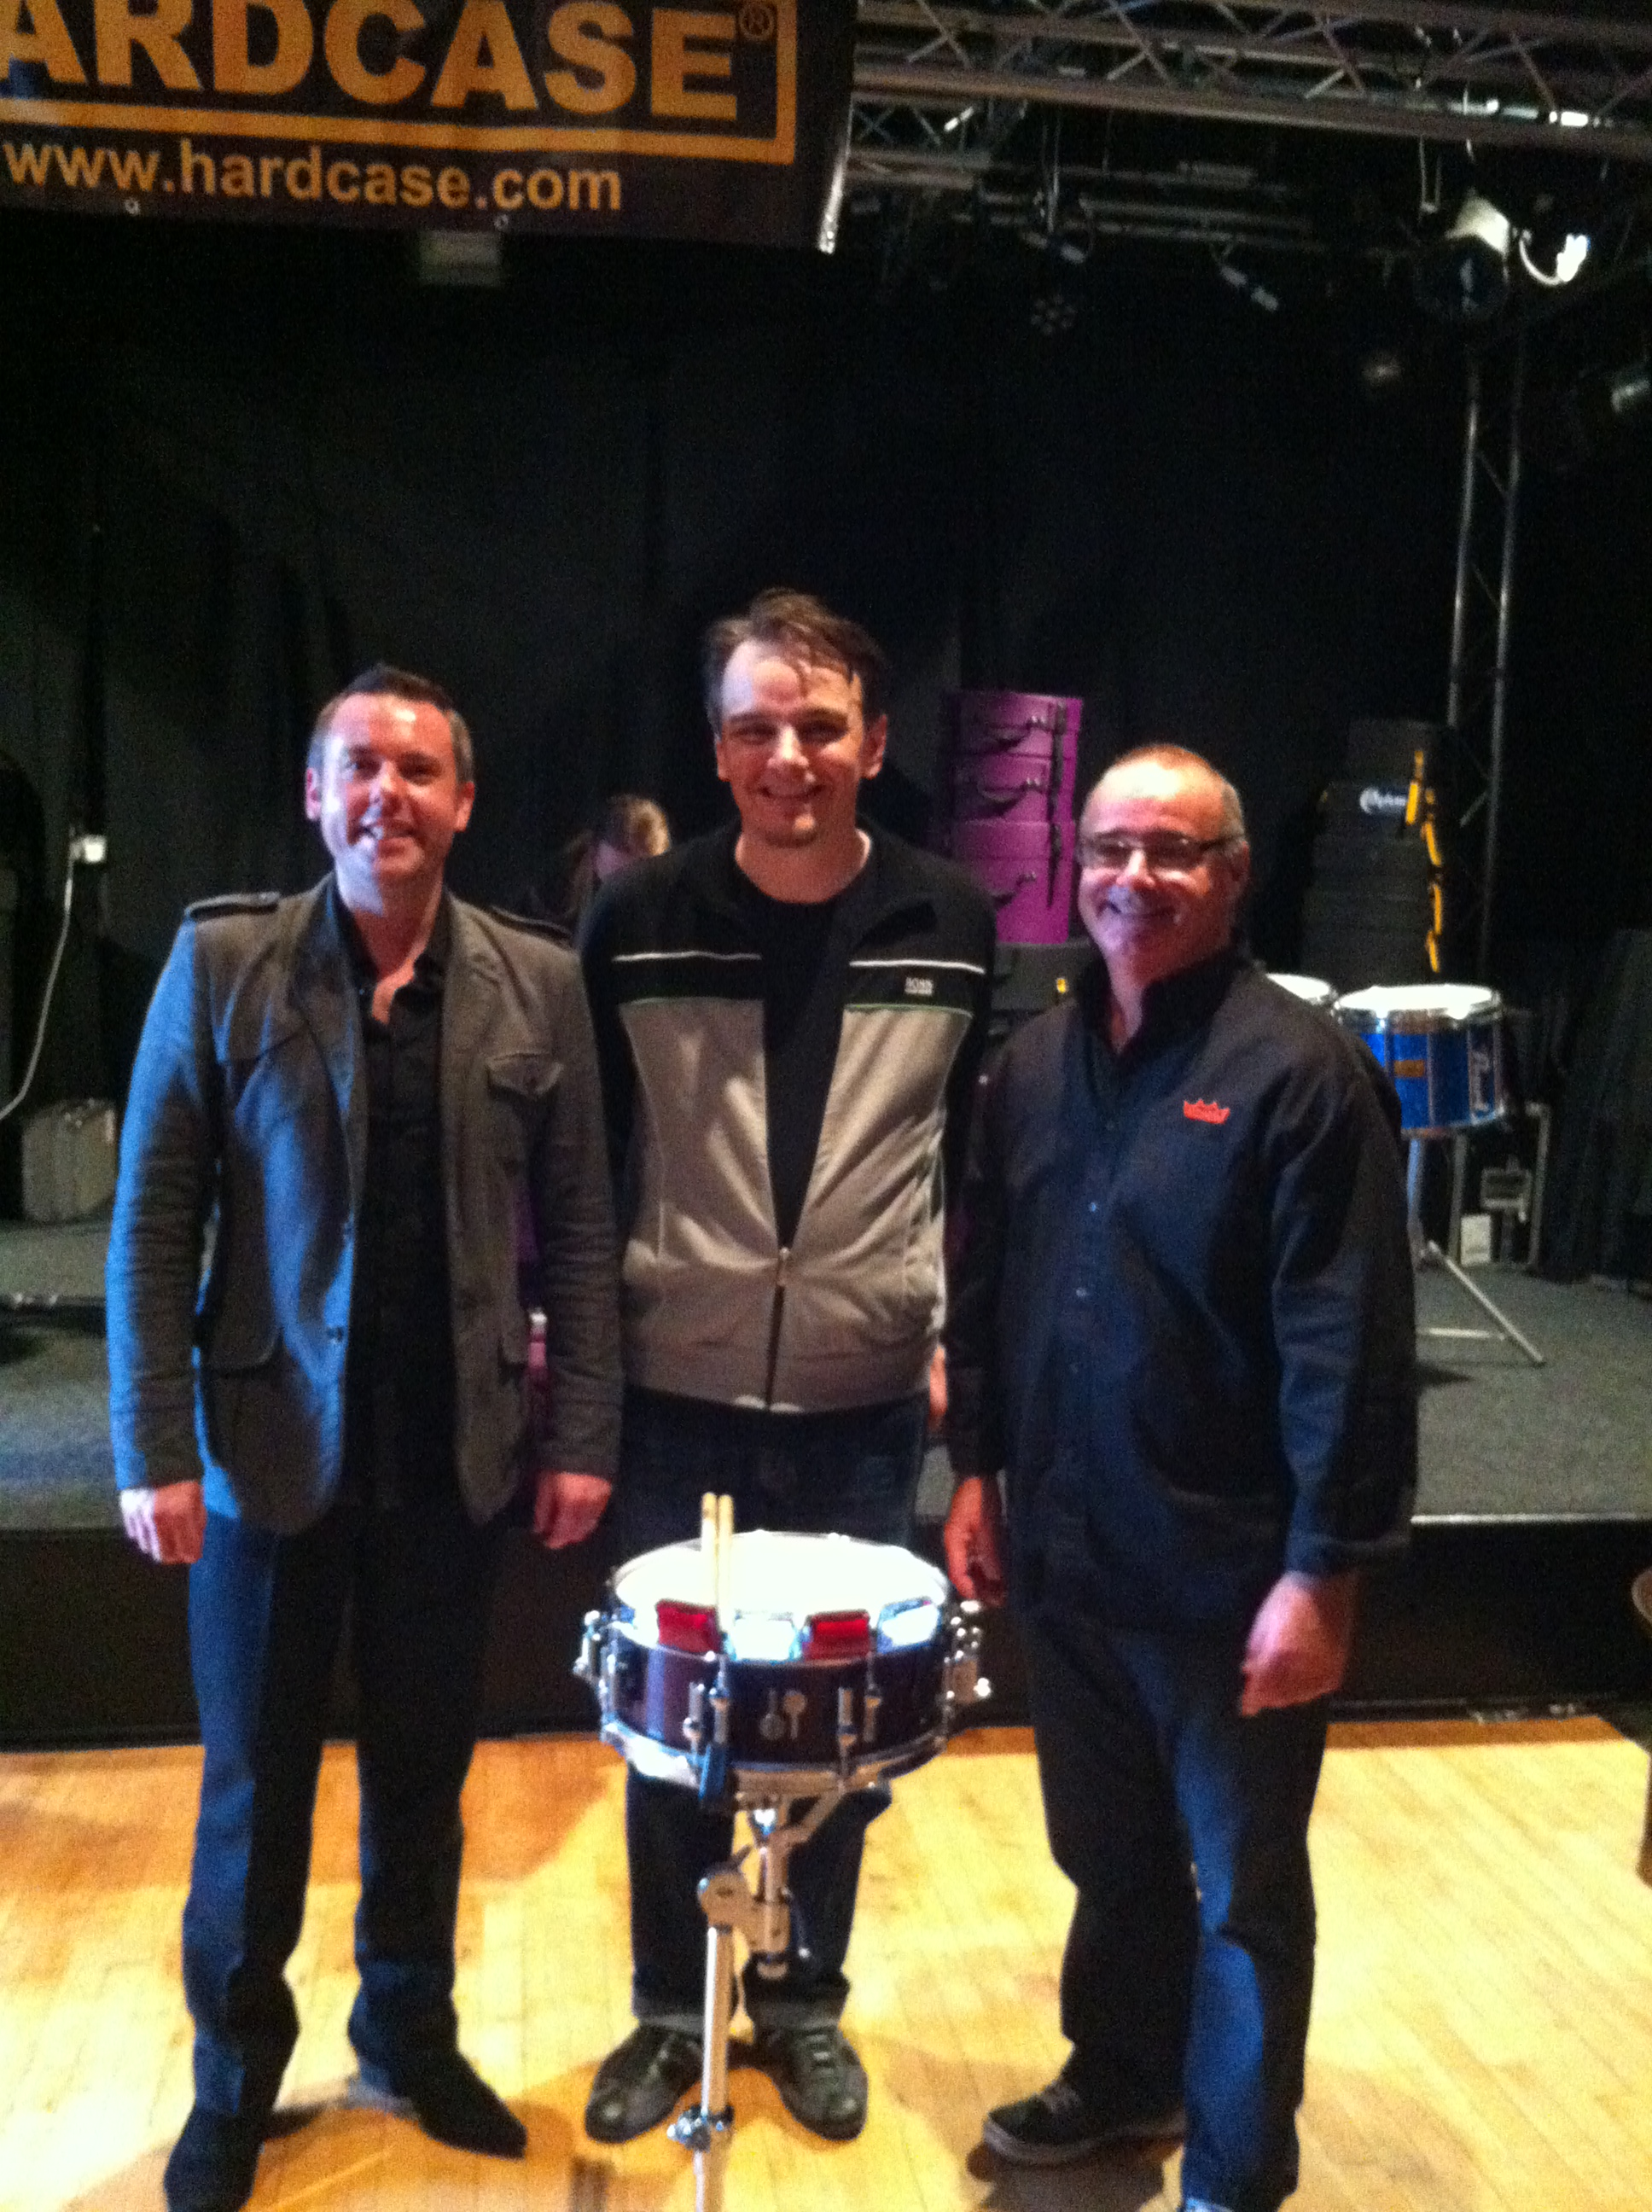 Rob, Jim and Gavin Harrison – 'Hardcase' drum clinic 2012